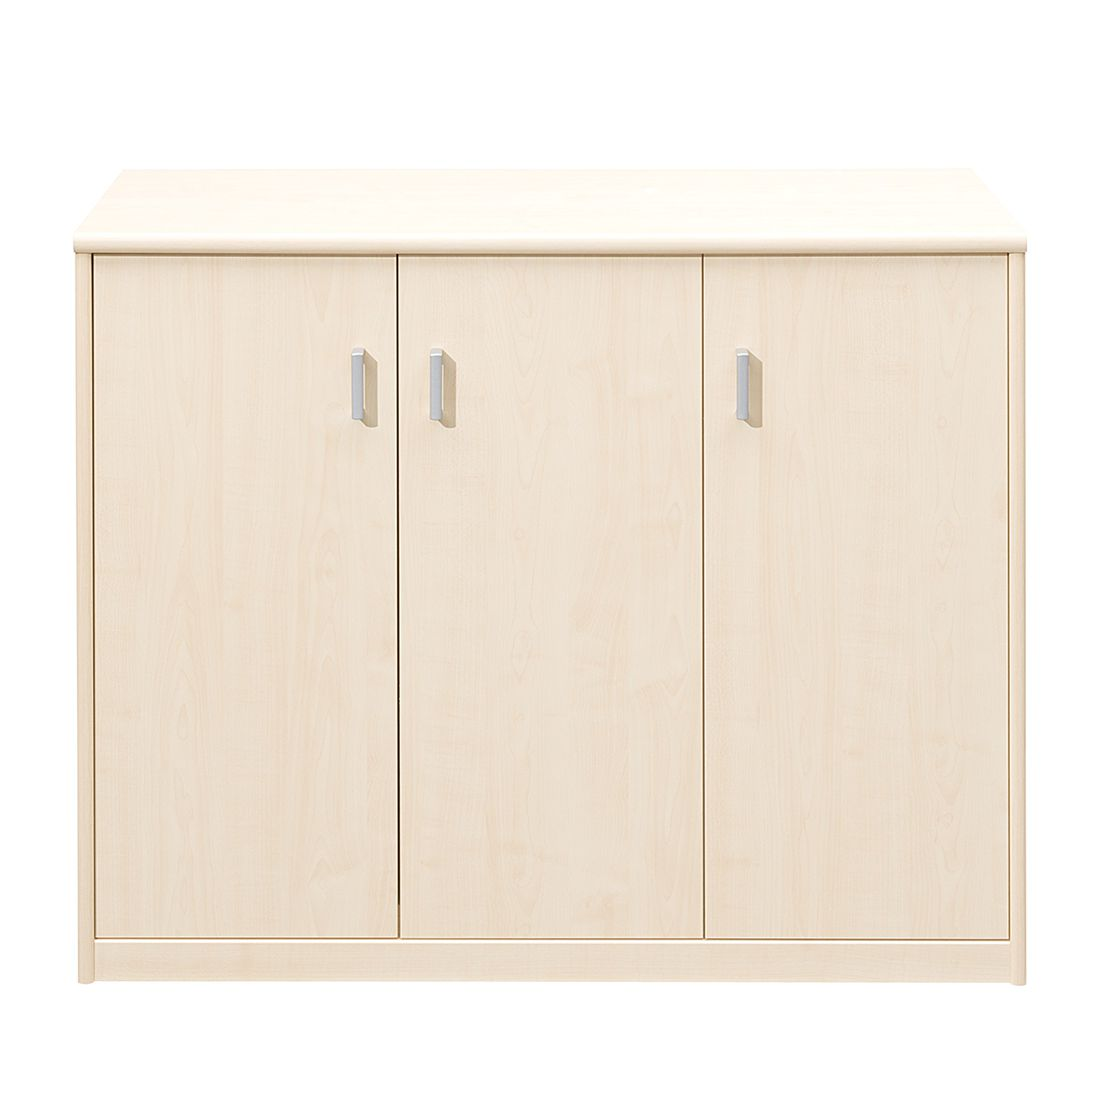 Kommode Soft Plus Kommode Soft Plus V Ahorn Dekor Schrank Info Schrank